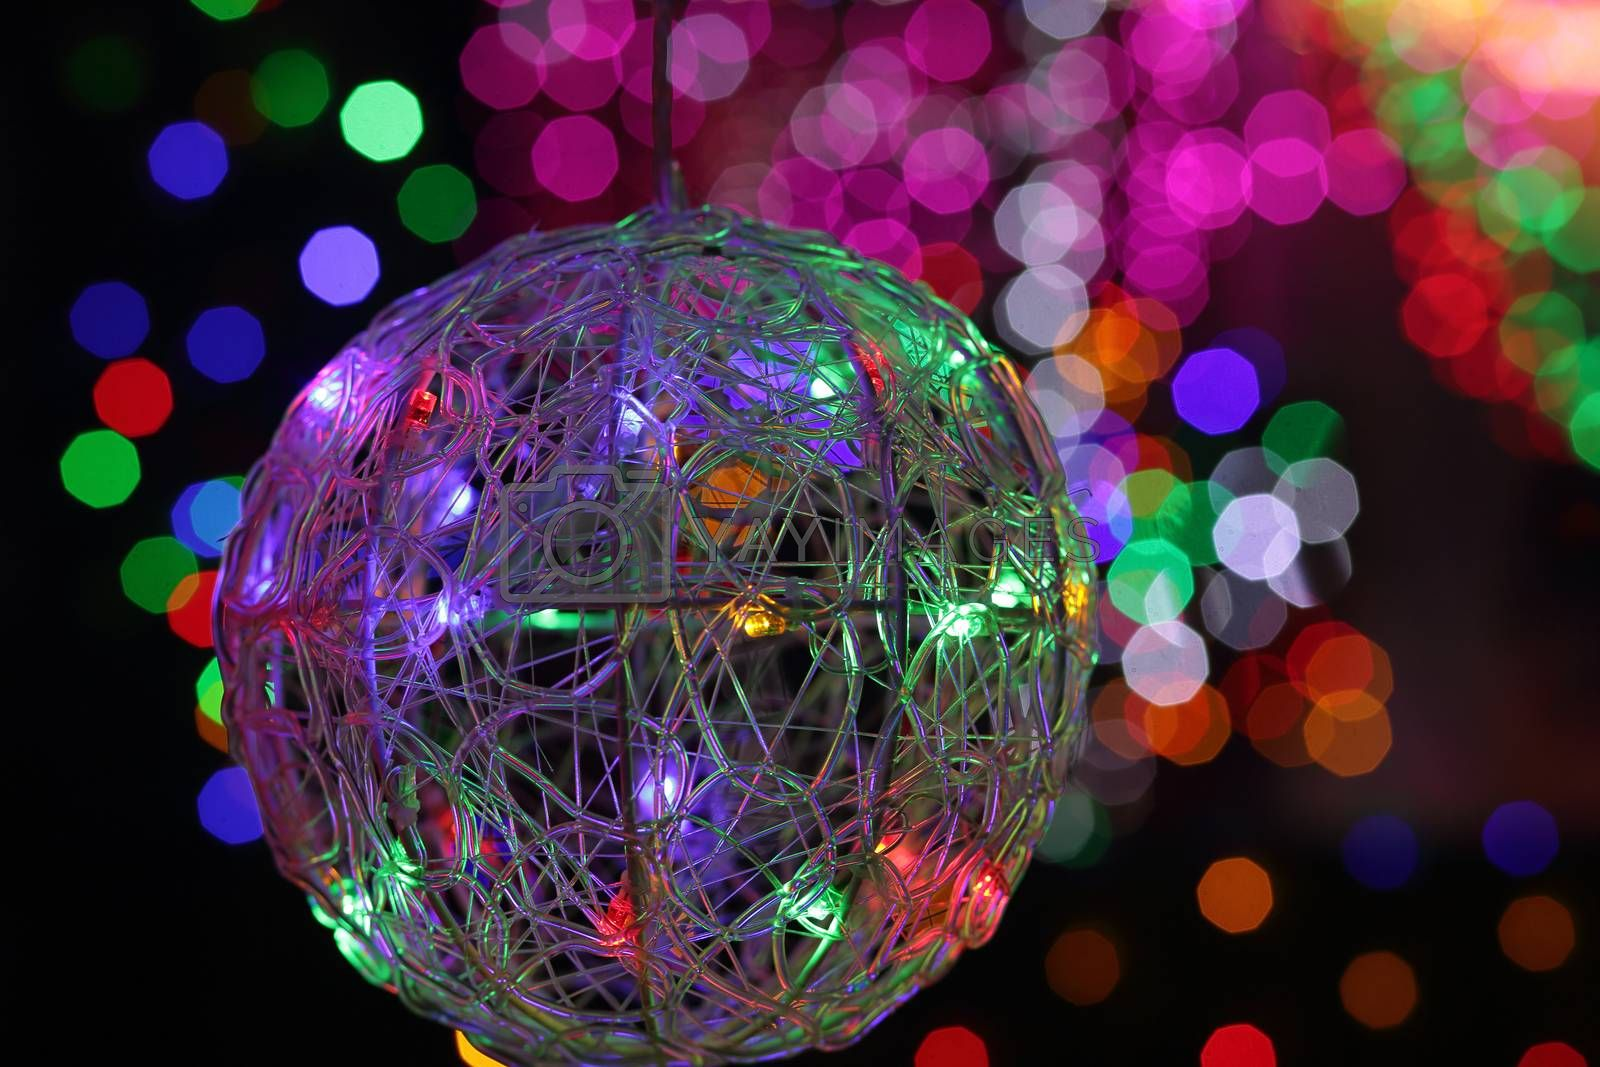 BEAUMONT HILLS, AUSTRALIA - DECEMBER 24, 2015;  Christmas wire mesh bauble ball in foreground with defocused colorued led lights in background - bokeh